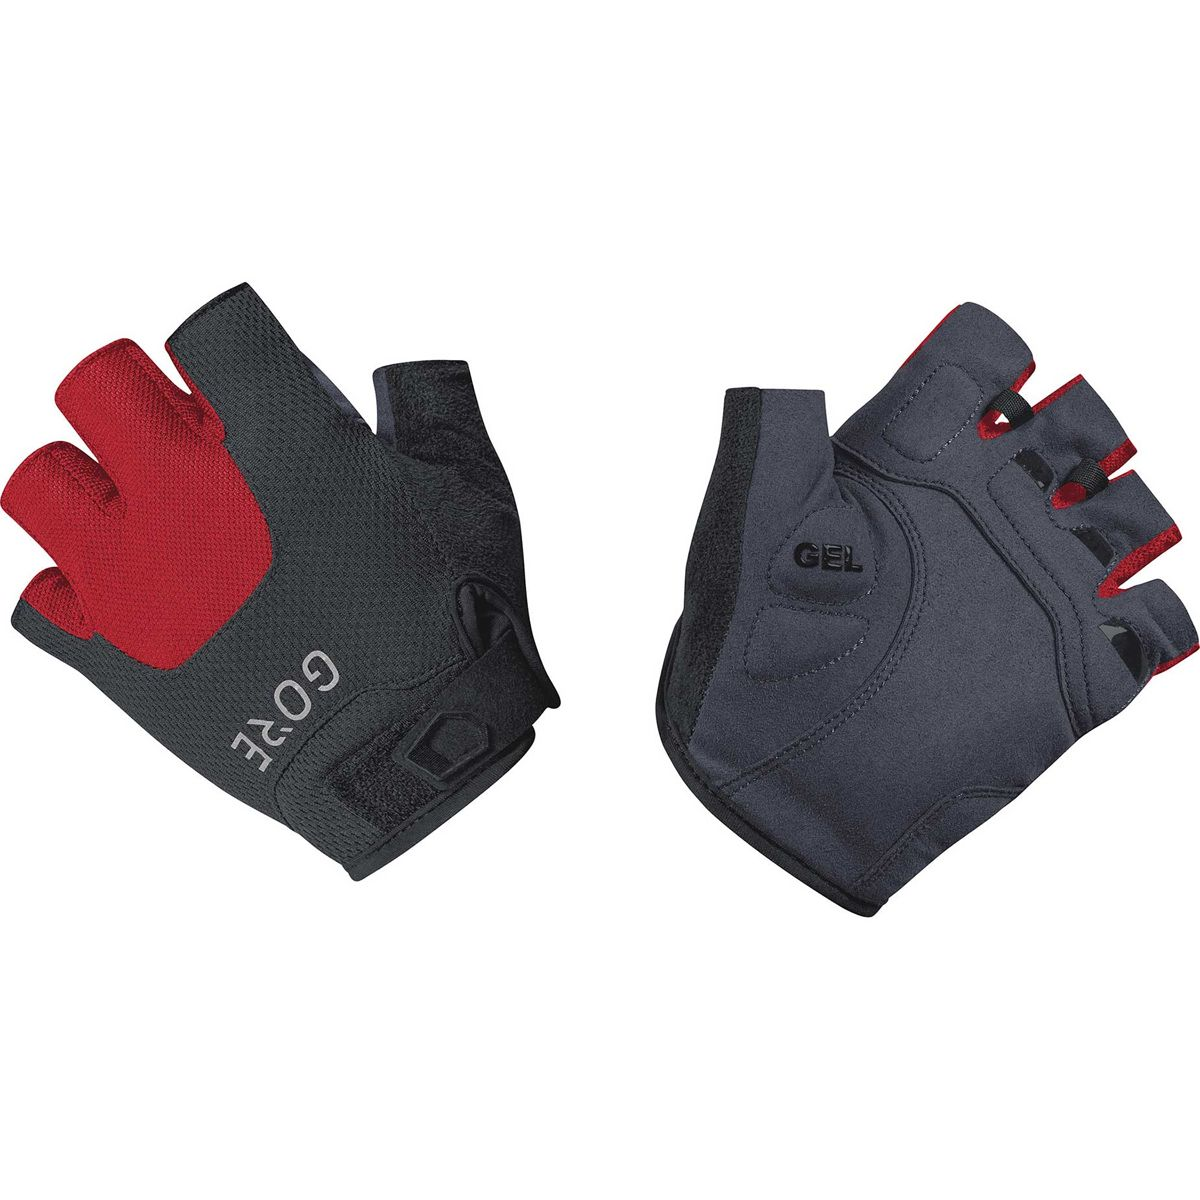 C5 SHORT FINGER TRAIL GLOVES